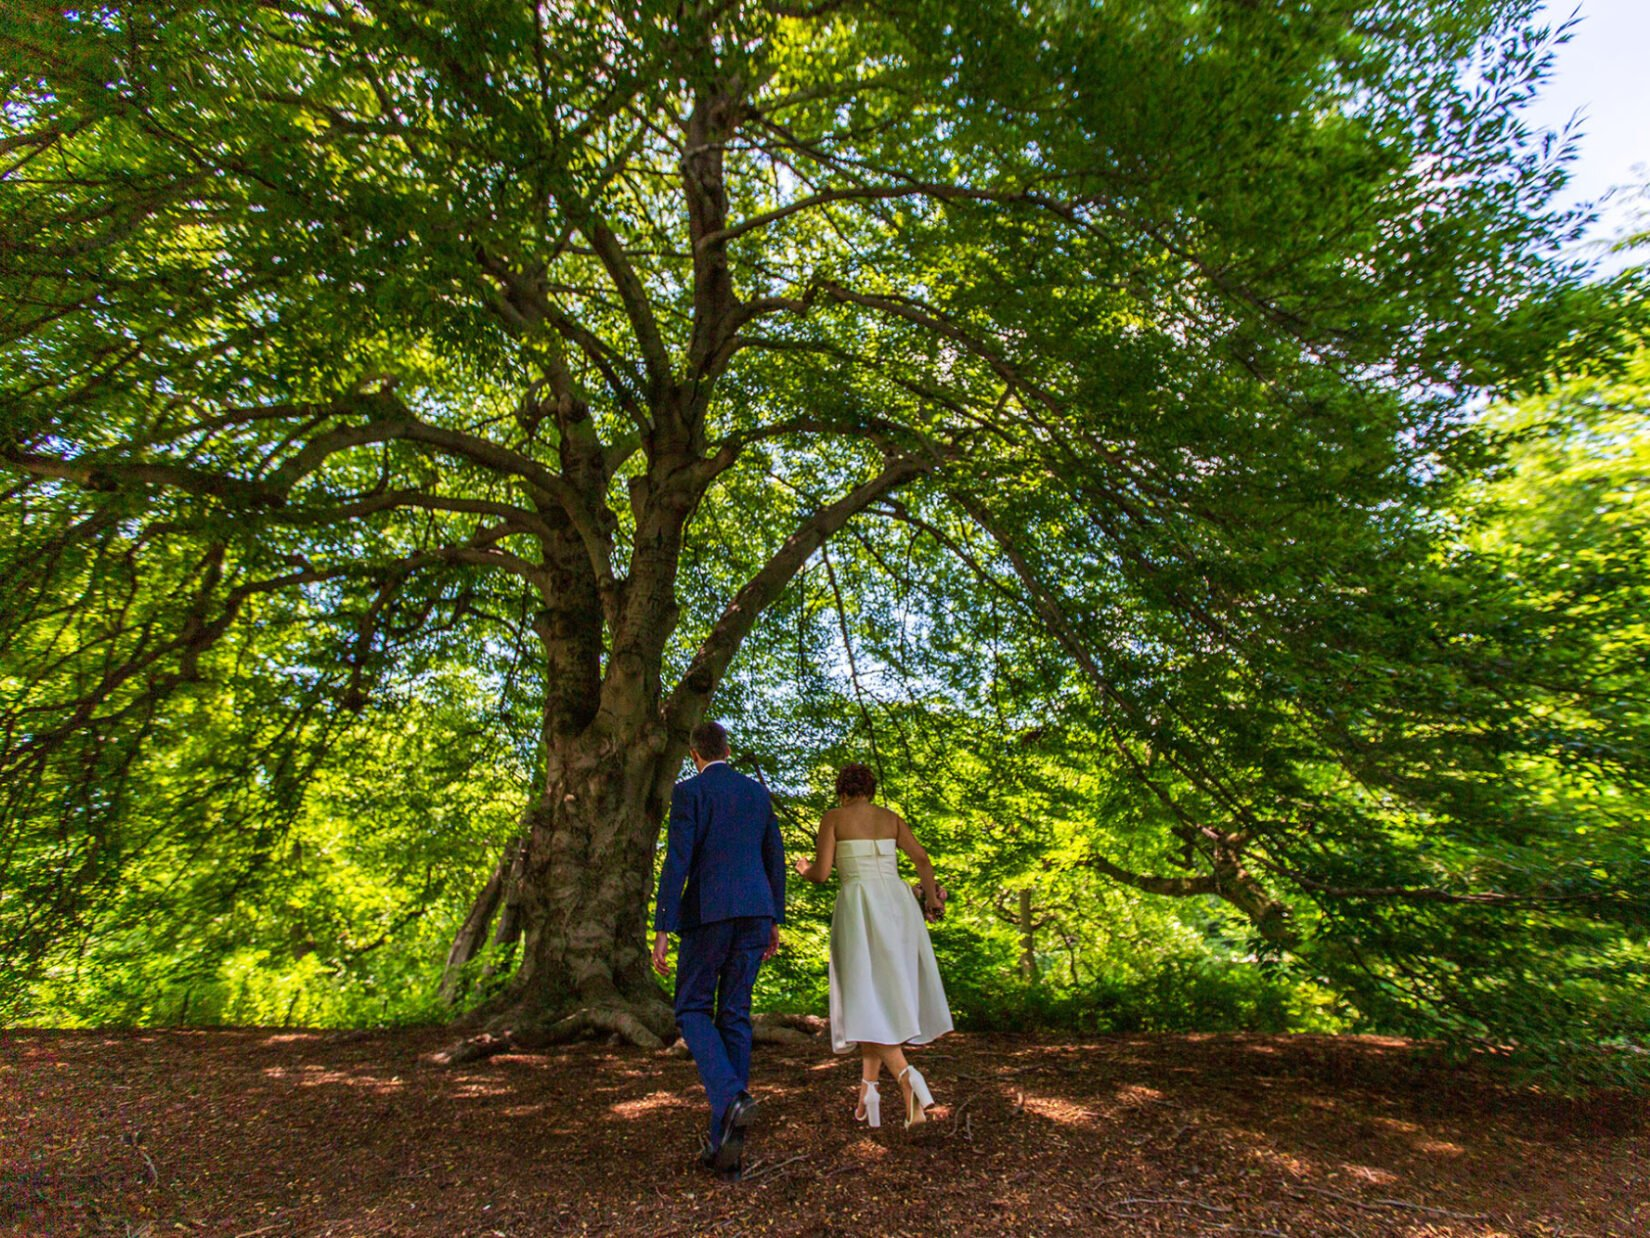 A couple, formally dressed, walk up a hill beneath the spreading boughs of a large, shadowed tree